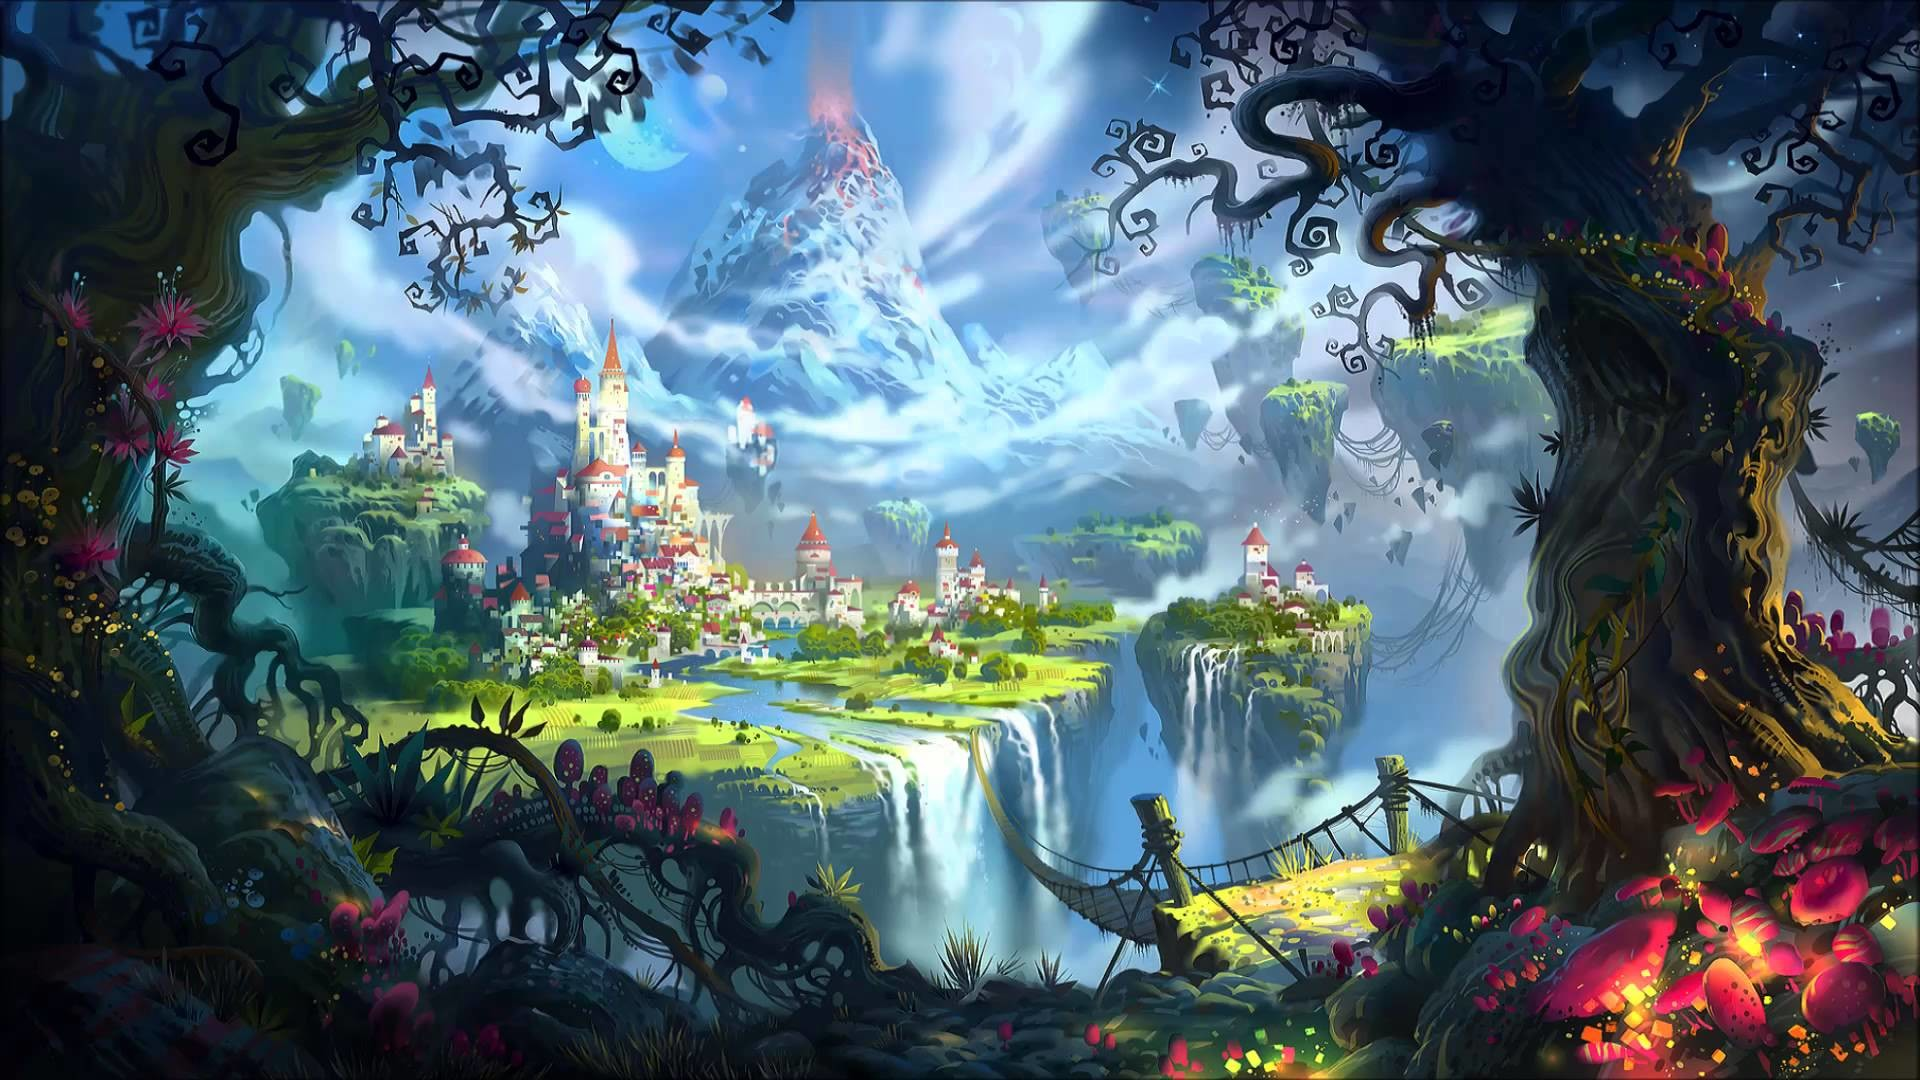 Fairytale Background 55 images